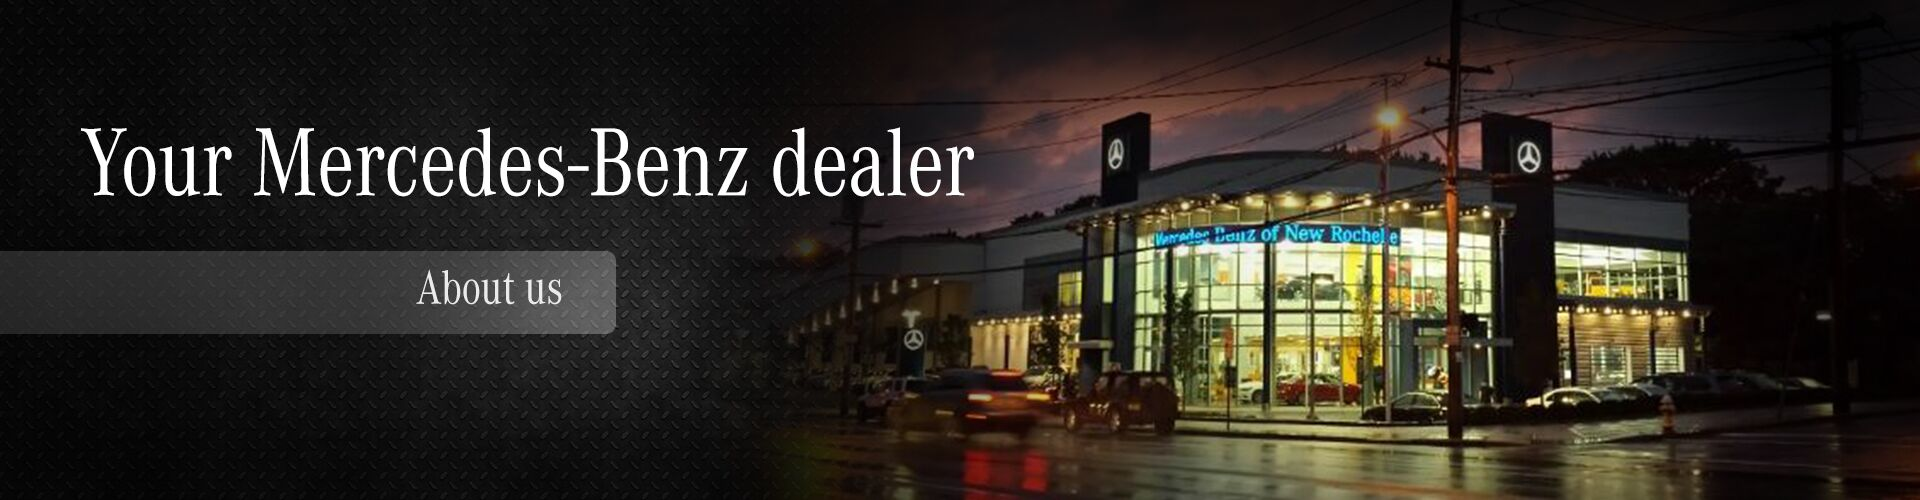 Mercedes benz dealership new rochelle ny used cars for Tri state mercedes benz dealers